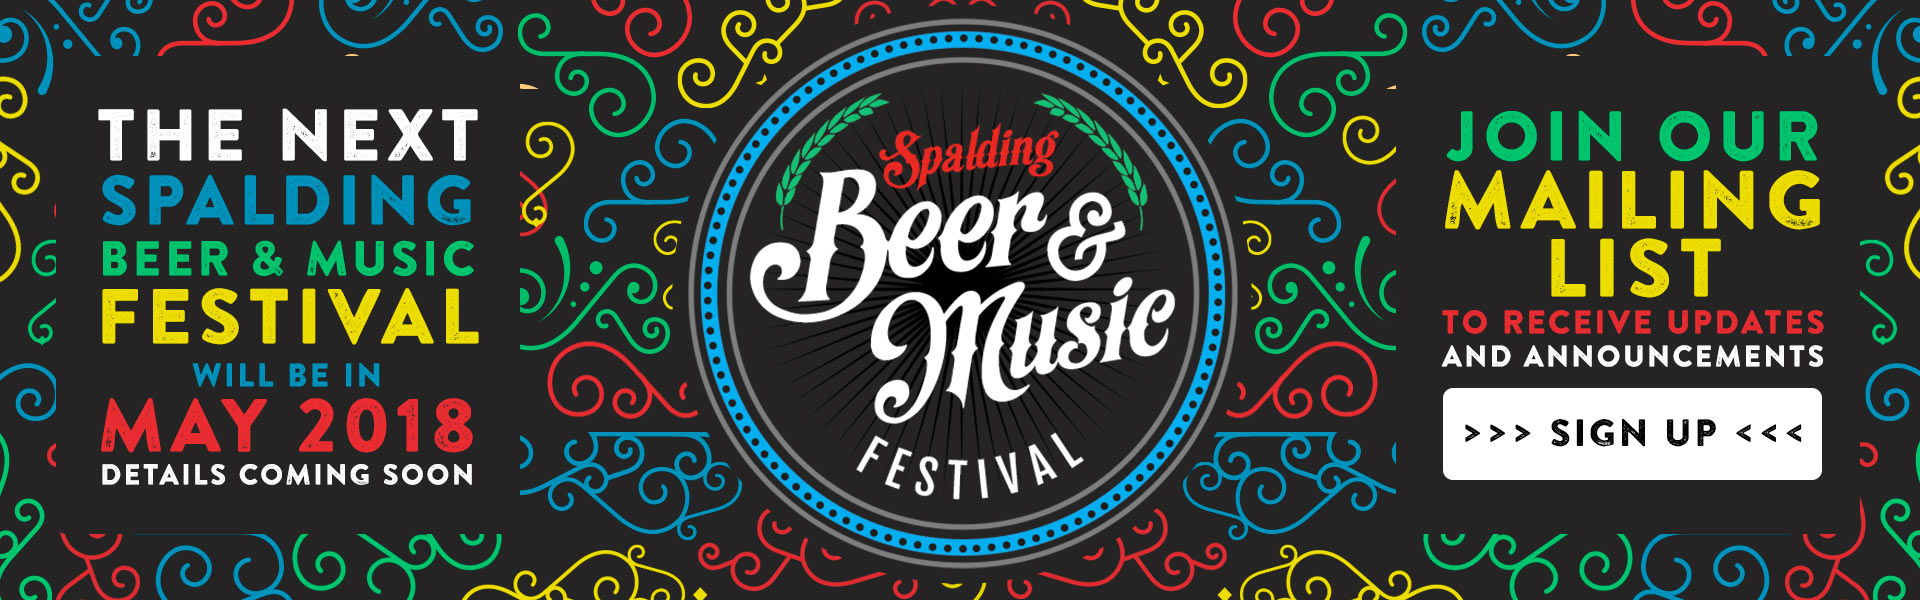 The Spalding Beer and Music Festival returns in May 2018 - details coming soon